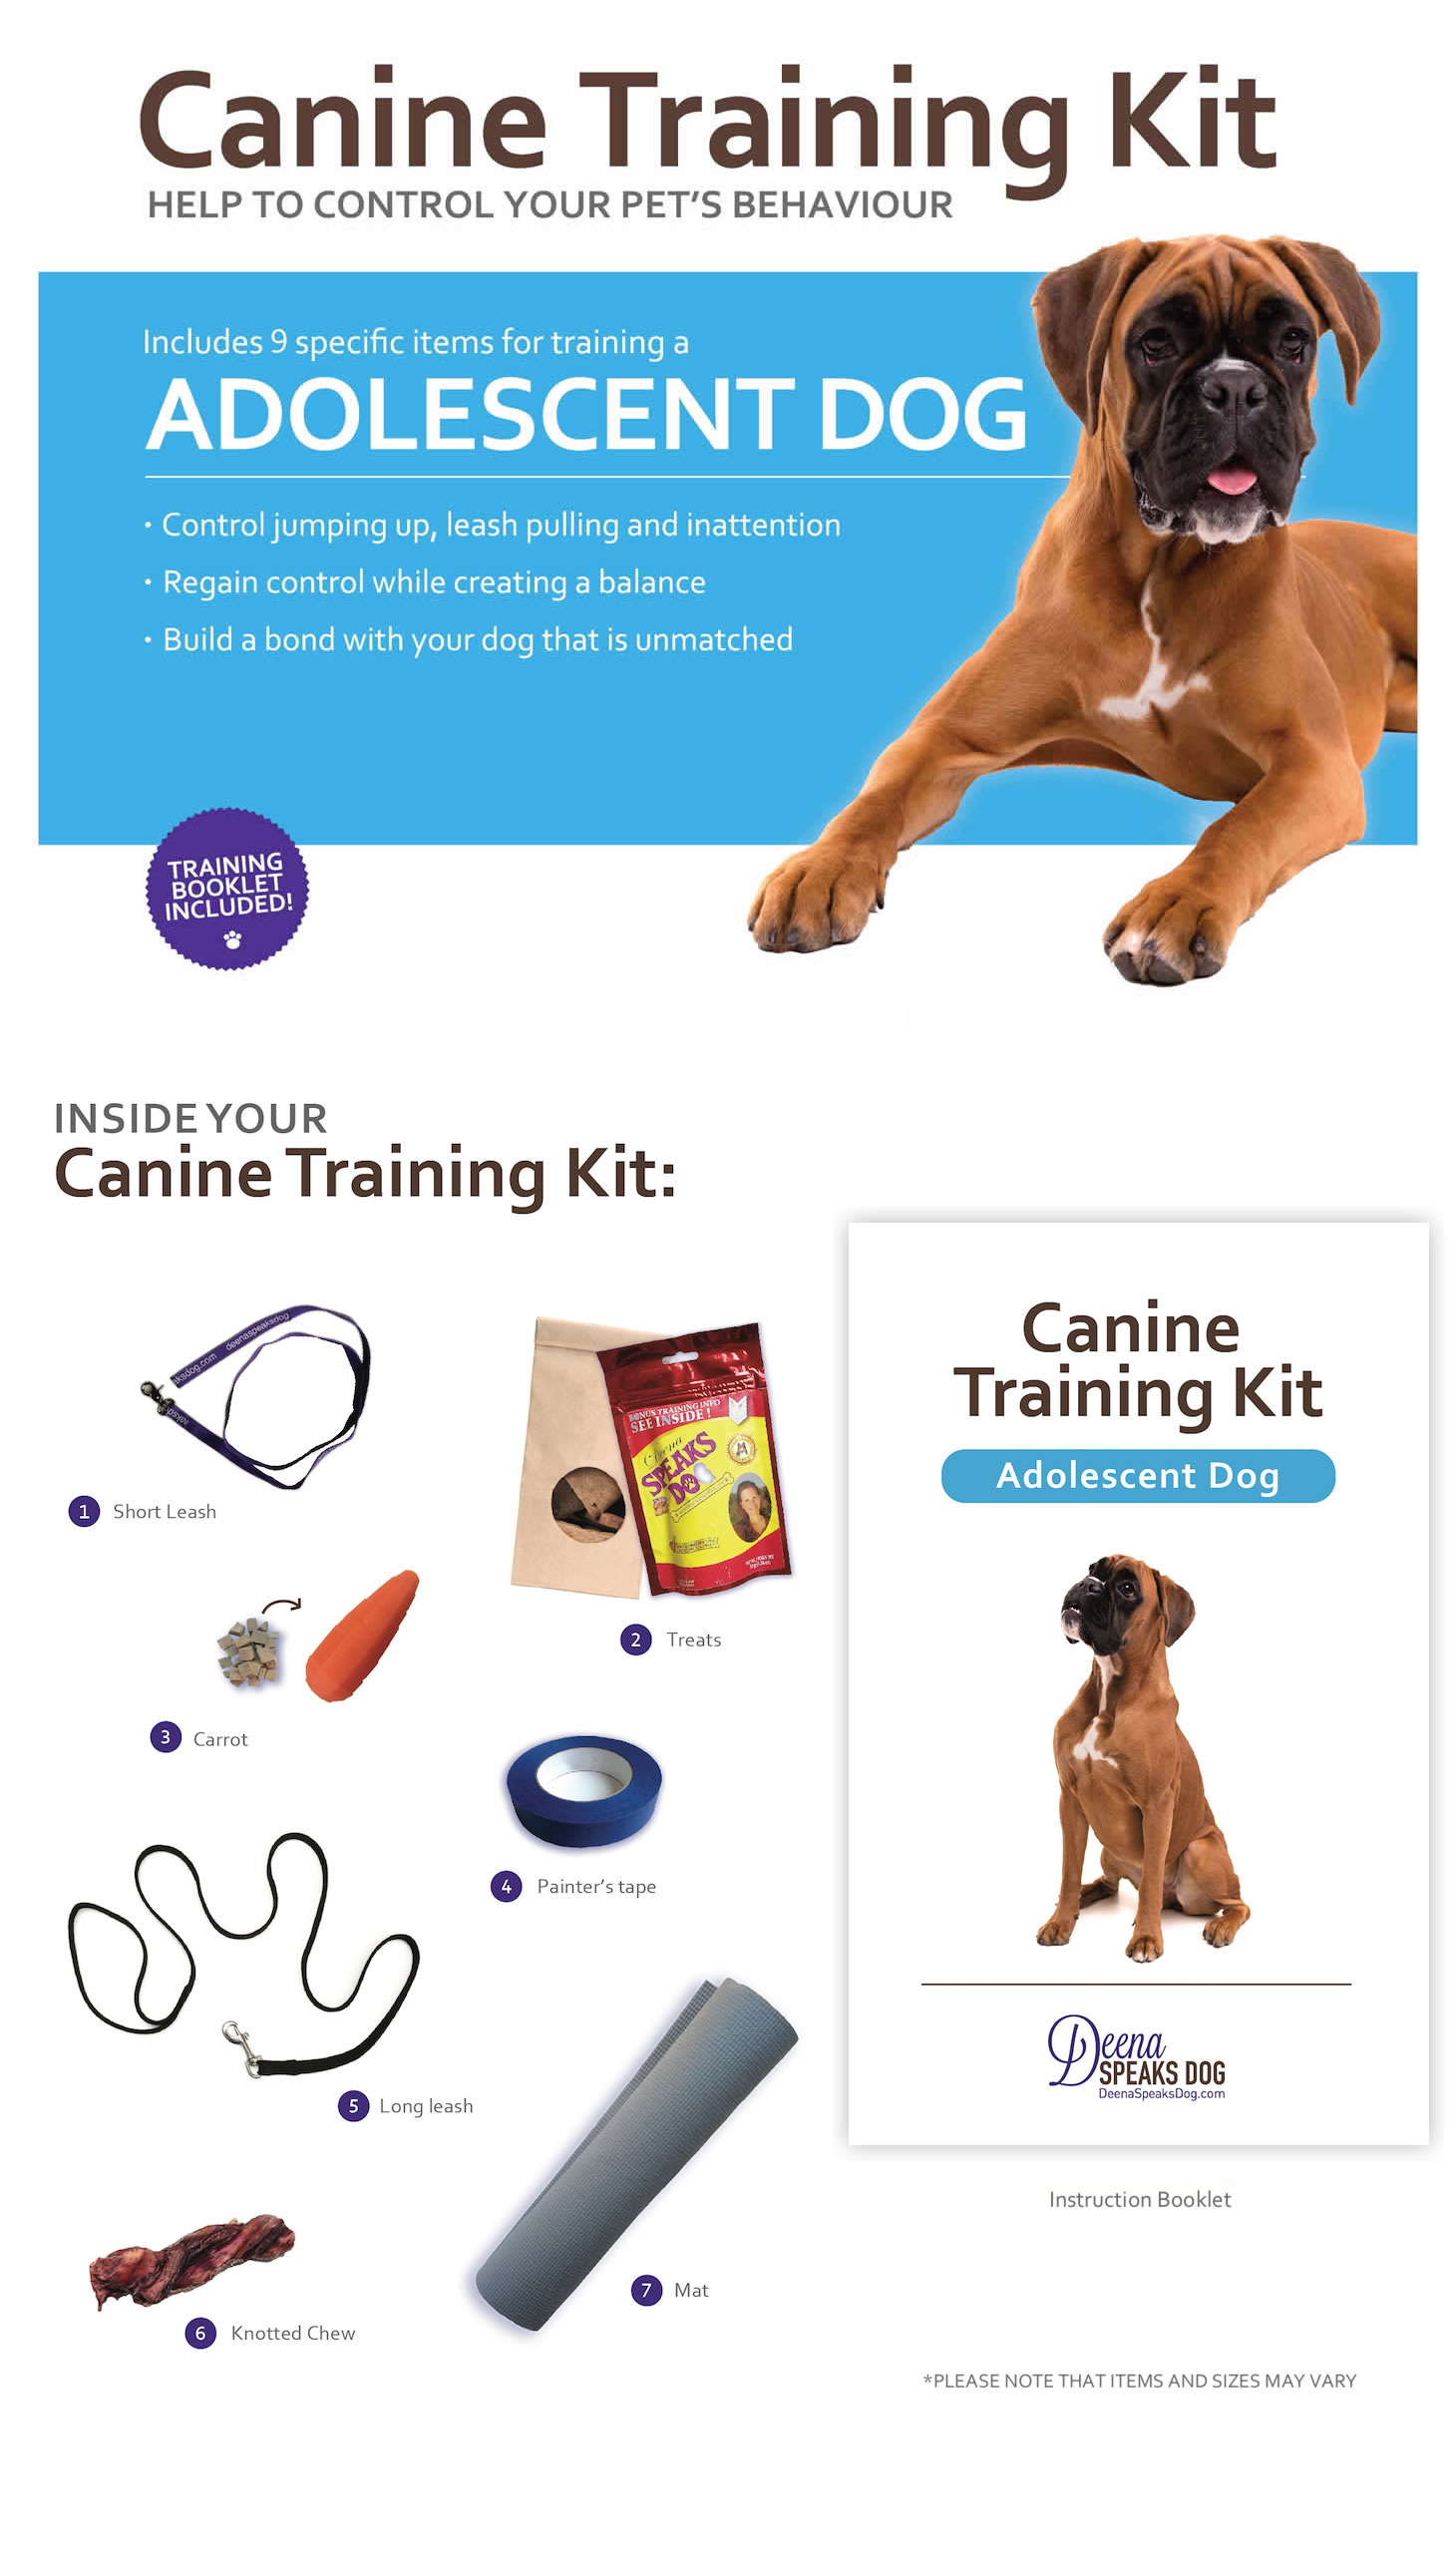 Adolescent Dog Training Kit